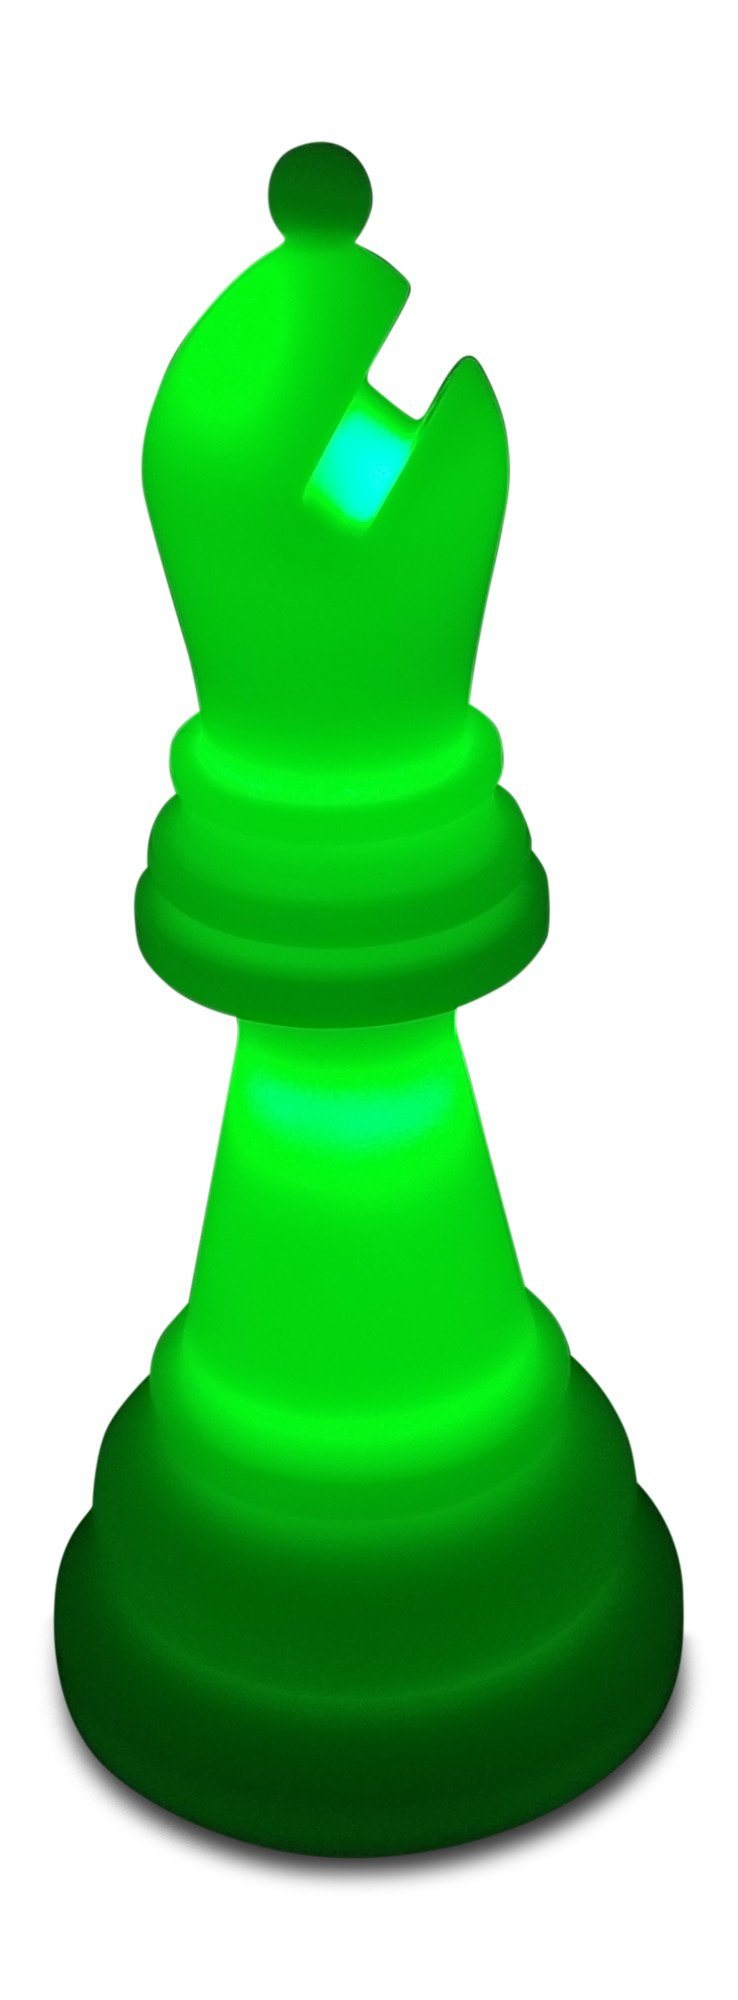 MegaChess 20 Inch Premium Plastic Bishop Light-Up Giant Chess Piece - Green |  | MegaChess.com